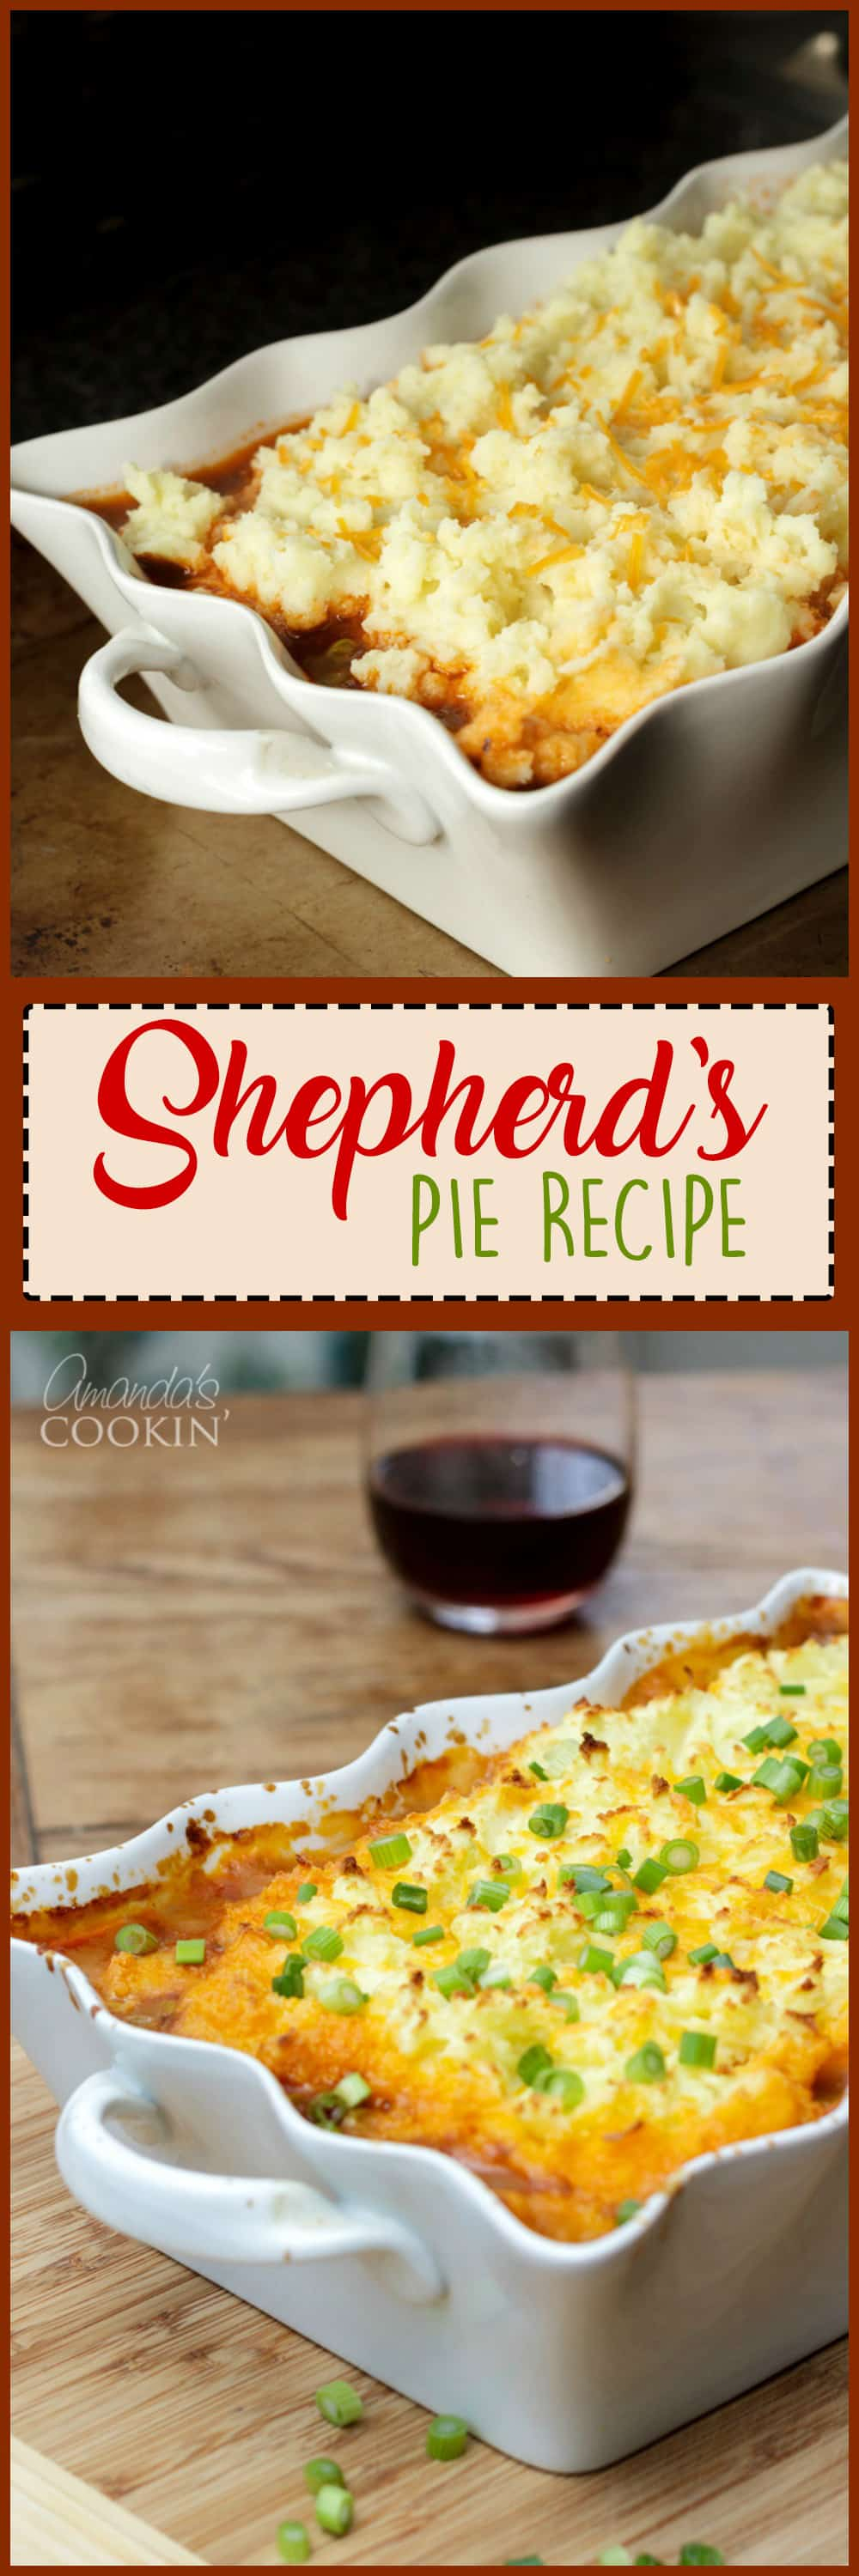 This Shepherd's Pie uses fresh ingredients mixed with ground beef to make a deliciously satisfying and filling dinner recipe!